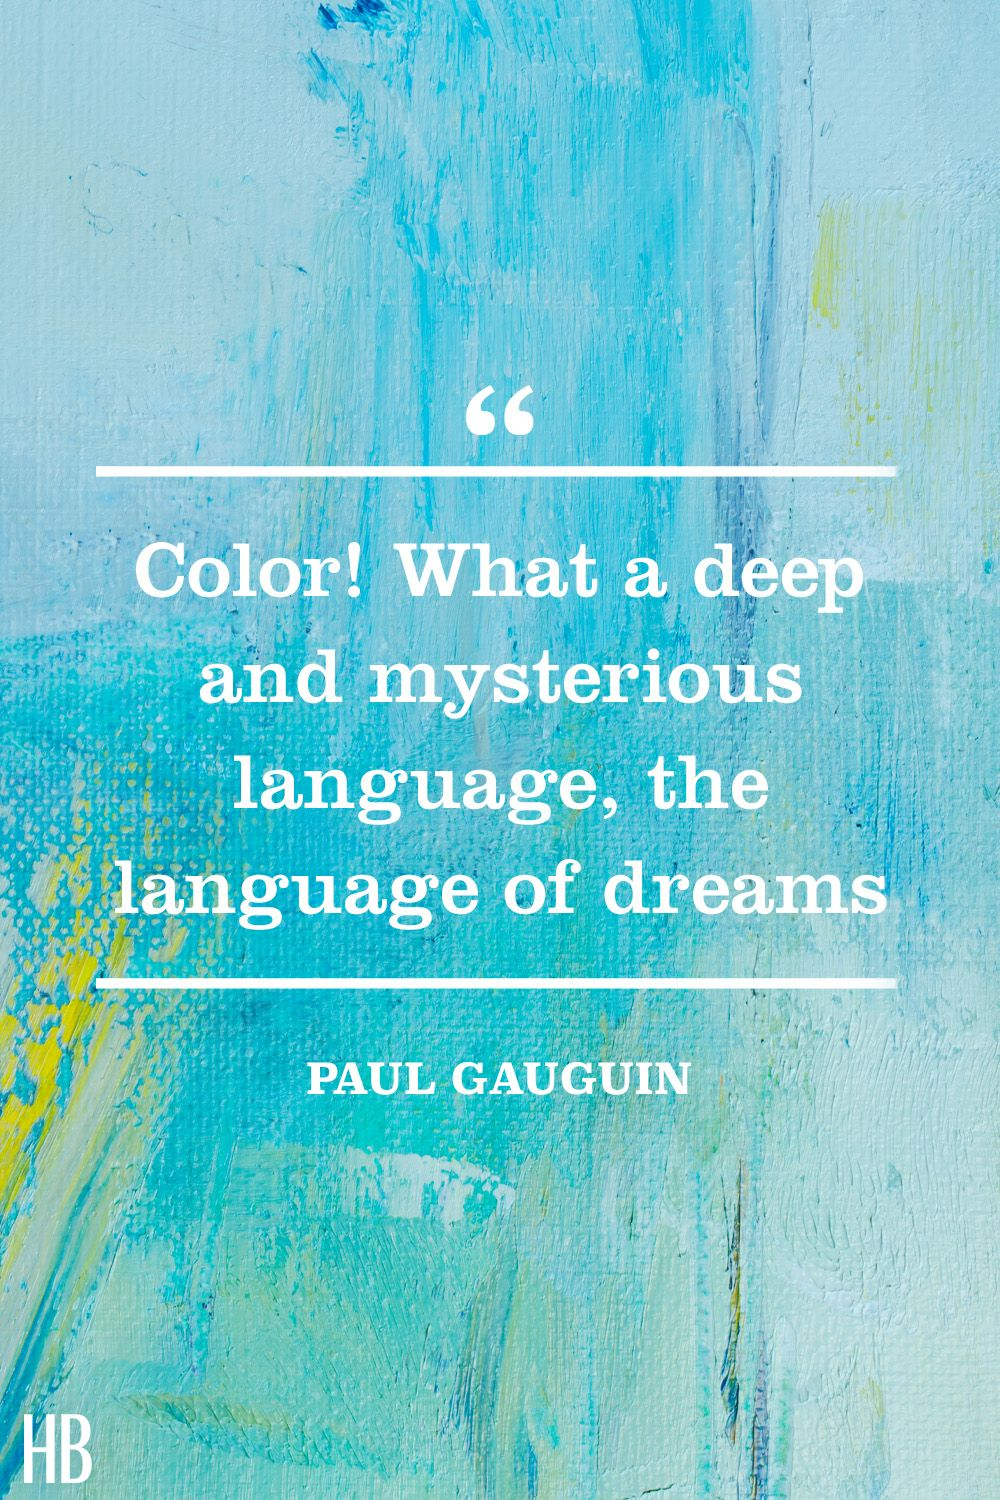 paul gauguin​​ color quote